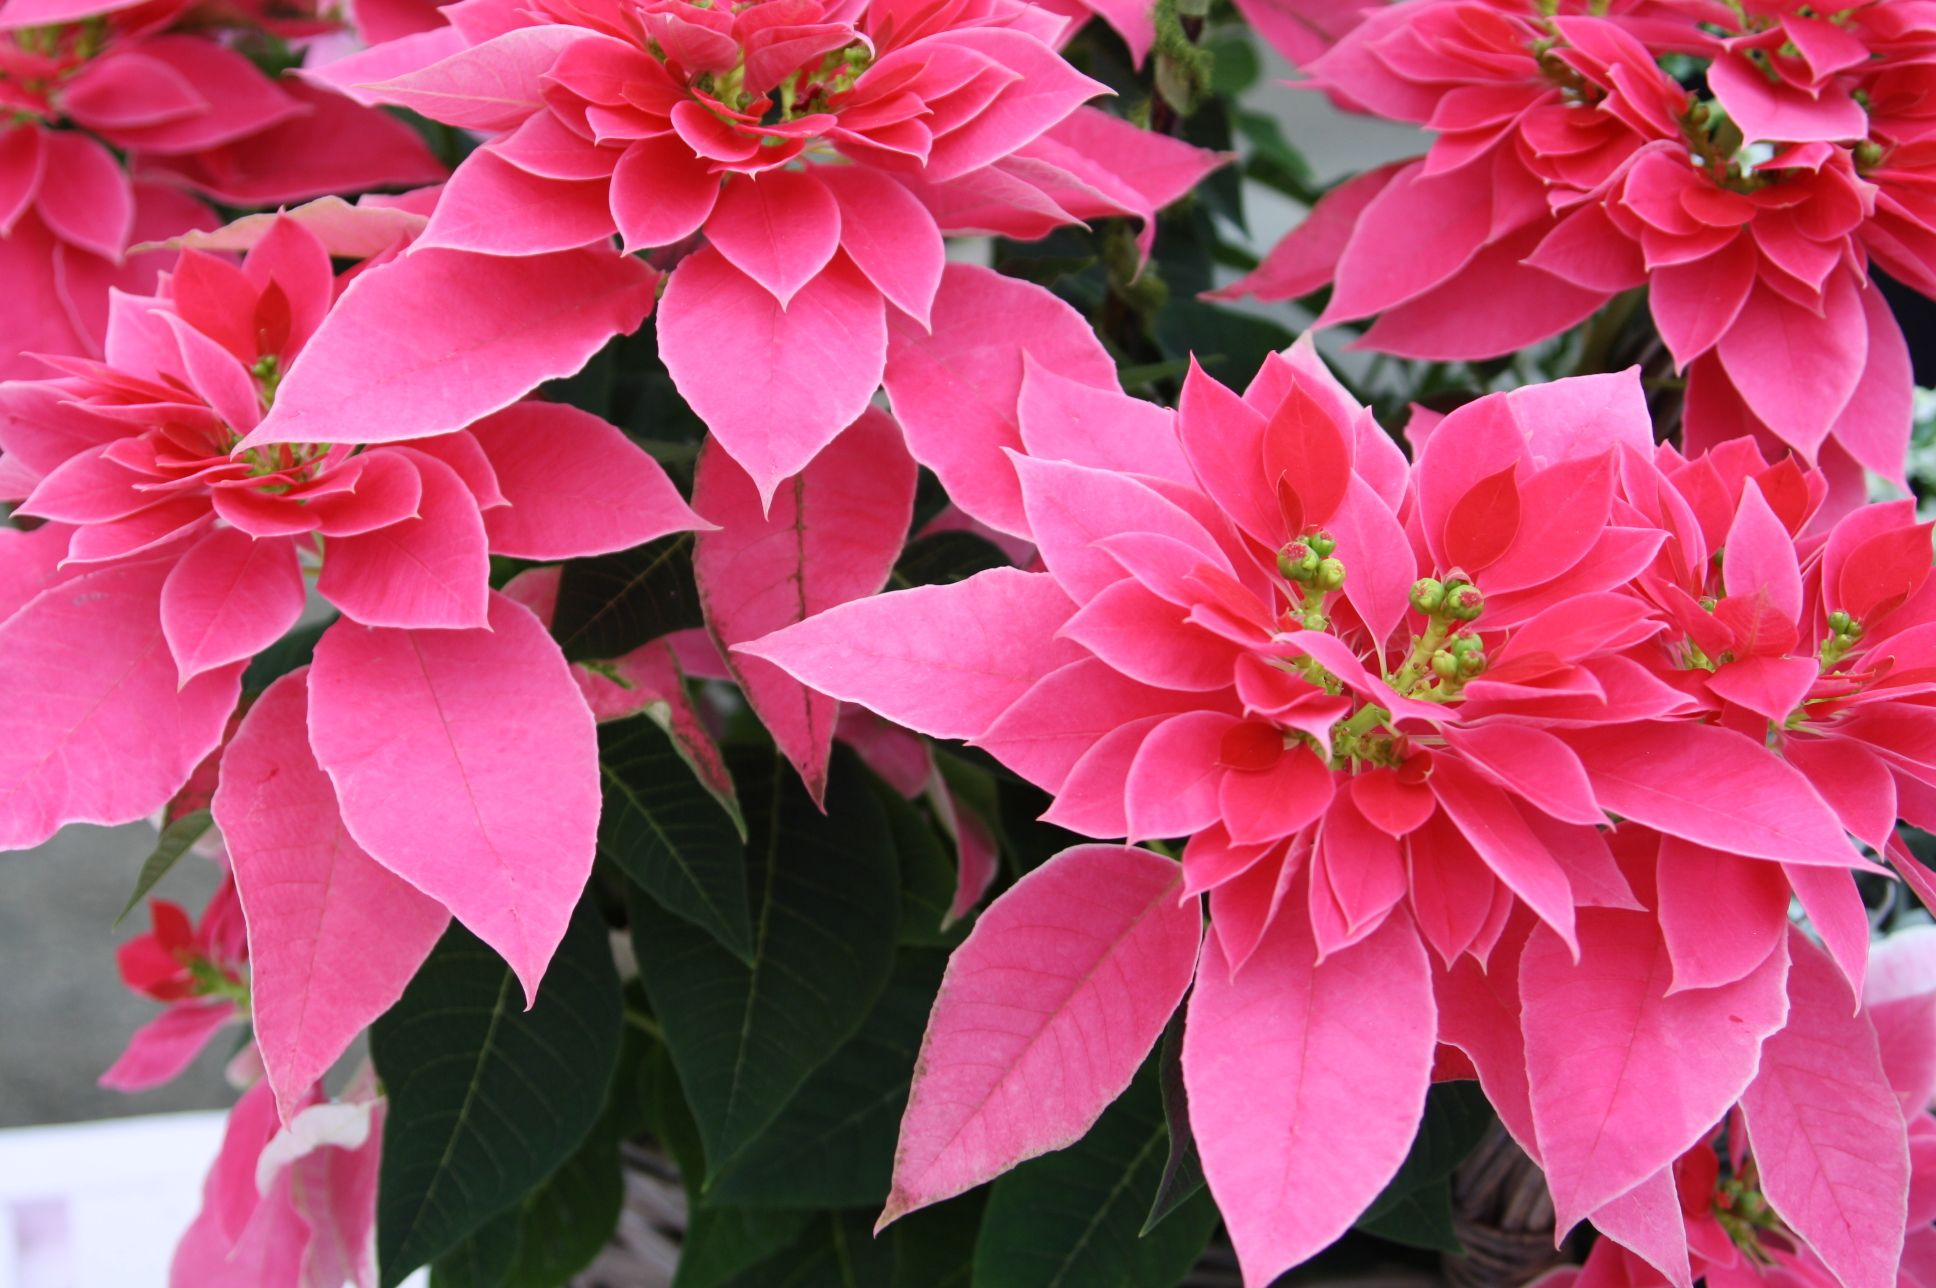 California Spring Plant Trials Poinsettia, Flowers and